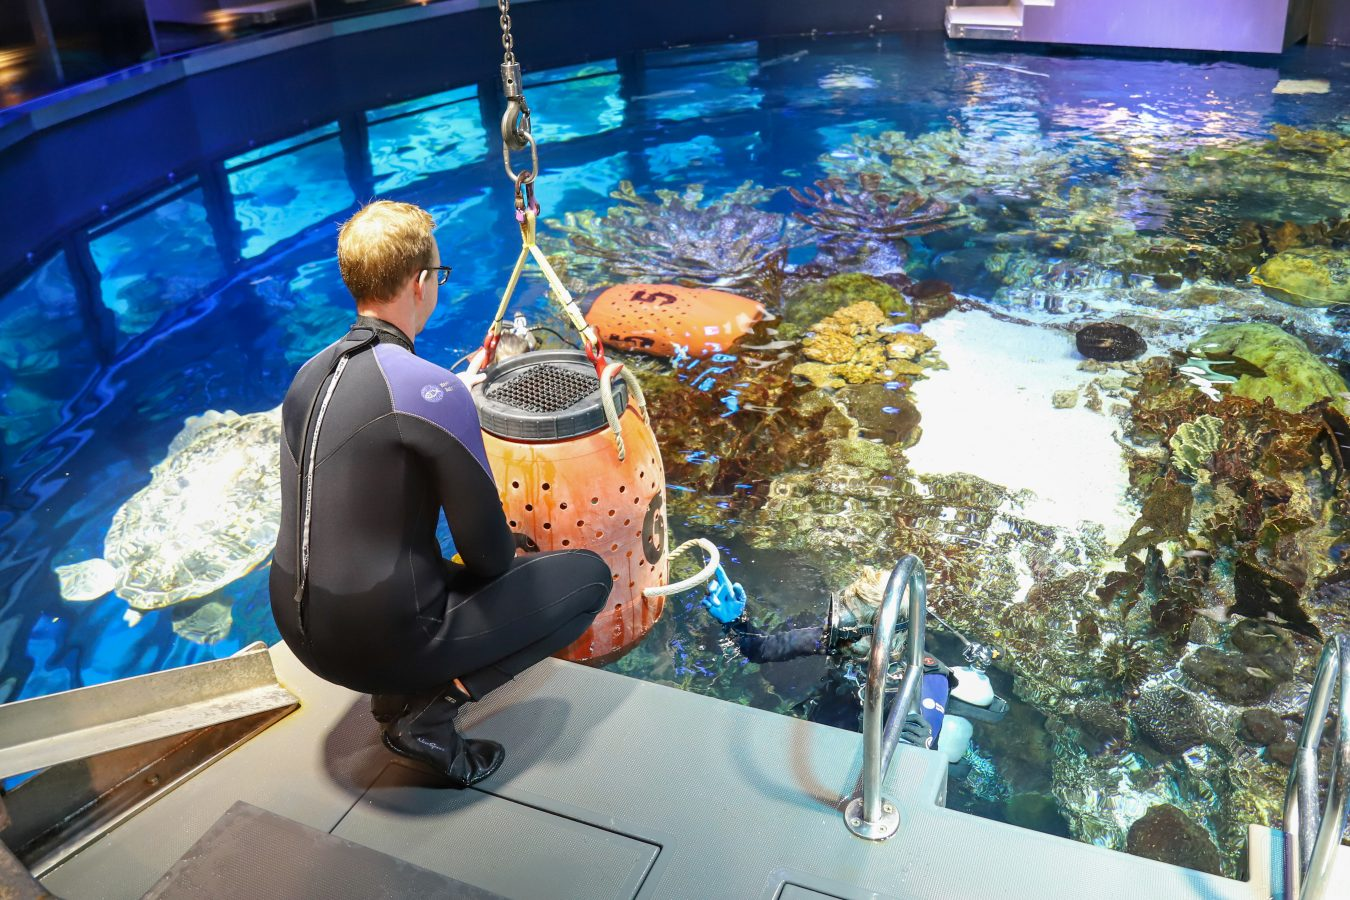 An aquarist adds an animal to the Giant Ocean Tank